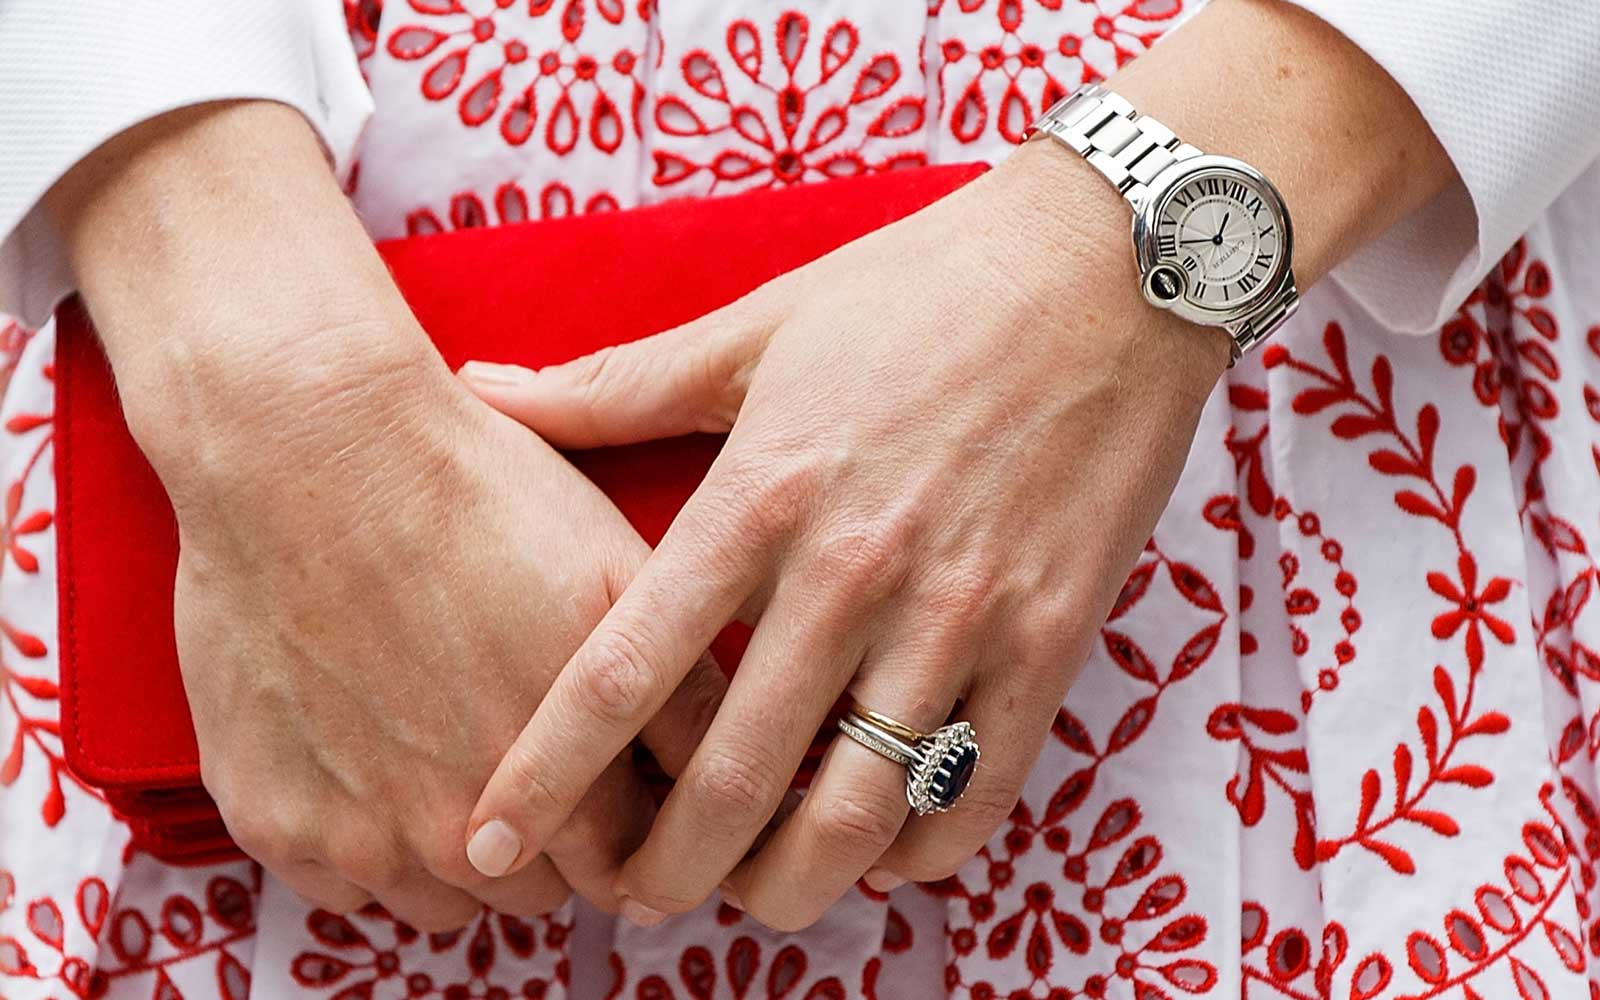 Why You'll Never See Members of the British Royal Family Wearing Red Nail Polish